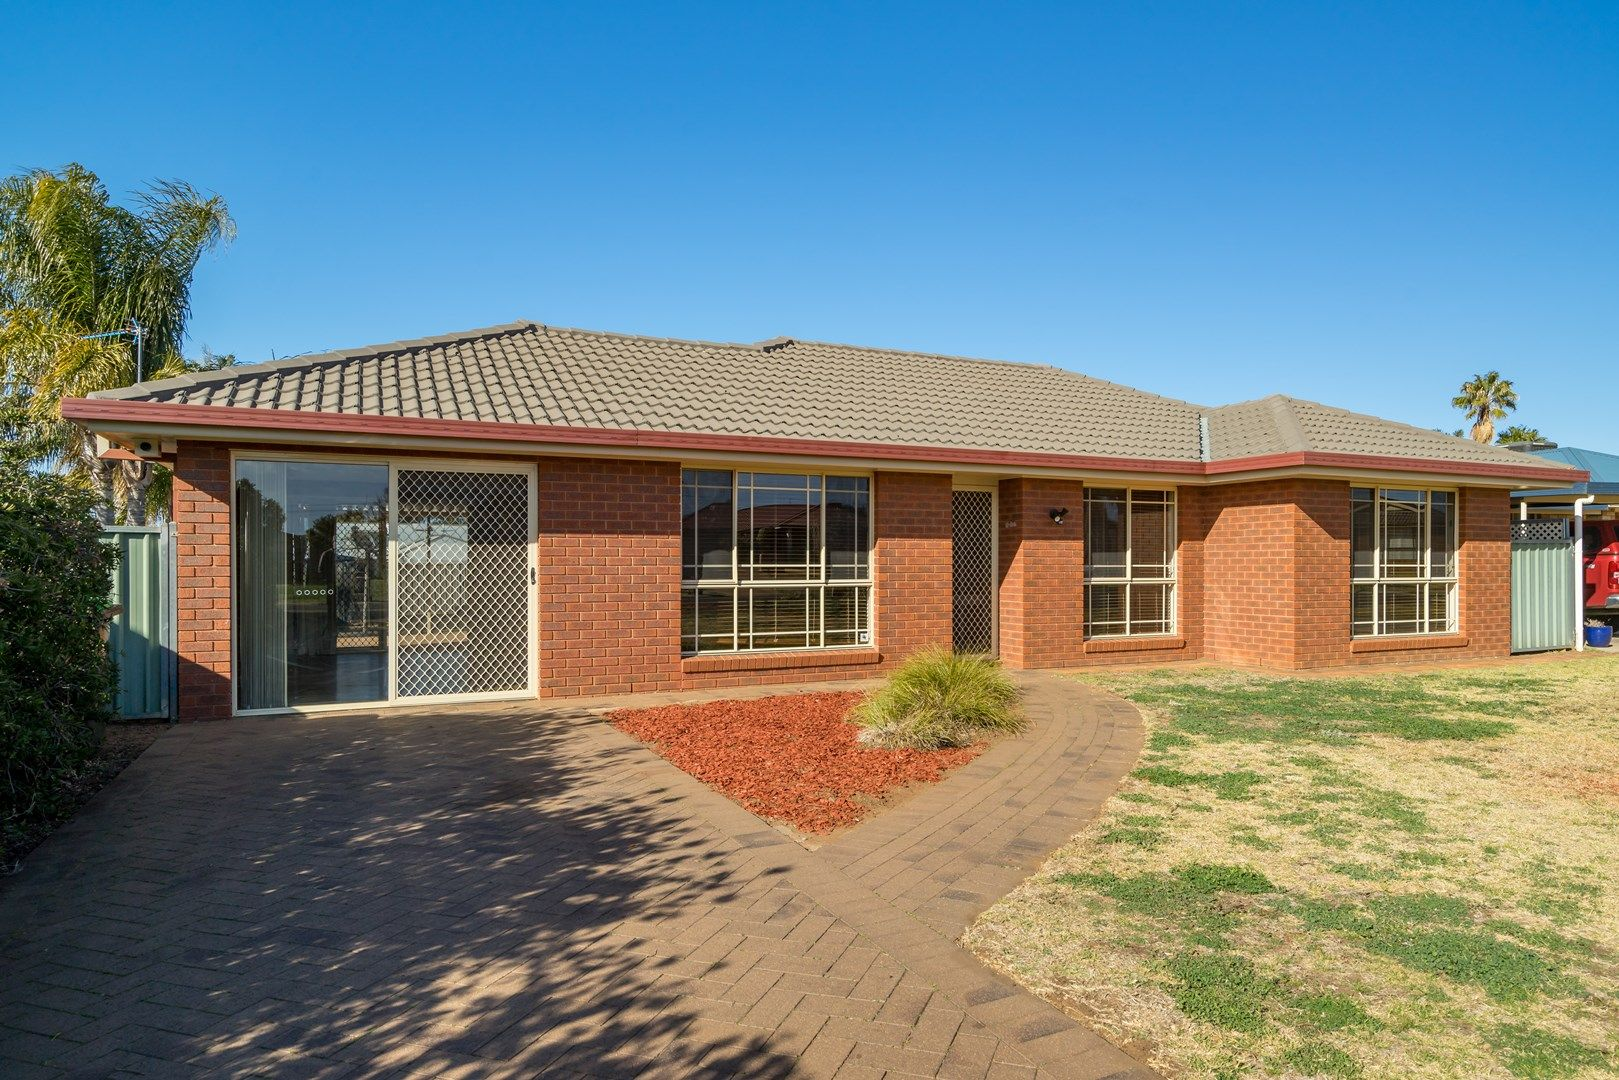 44 Meadowbank Drive, Dubbo NSW 2830, Image 0